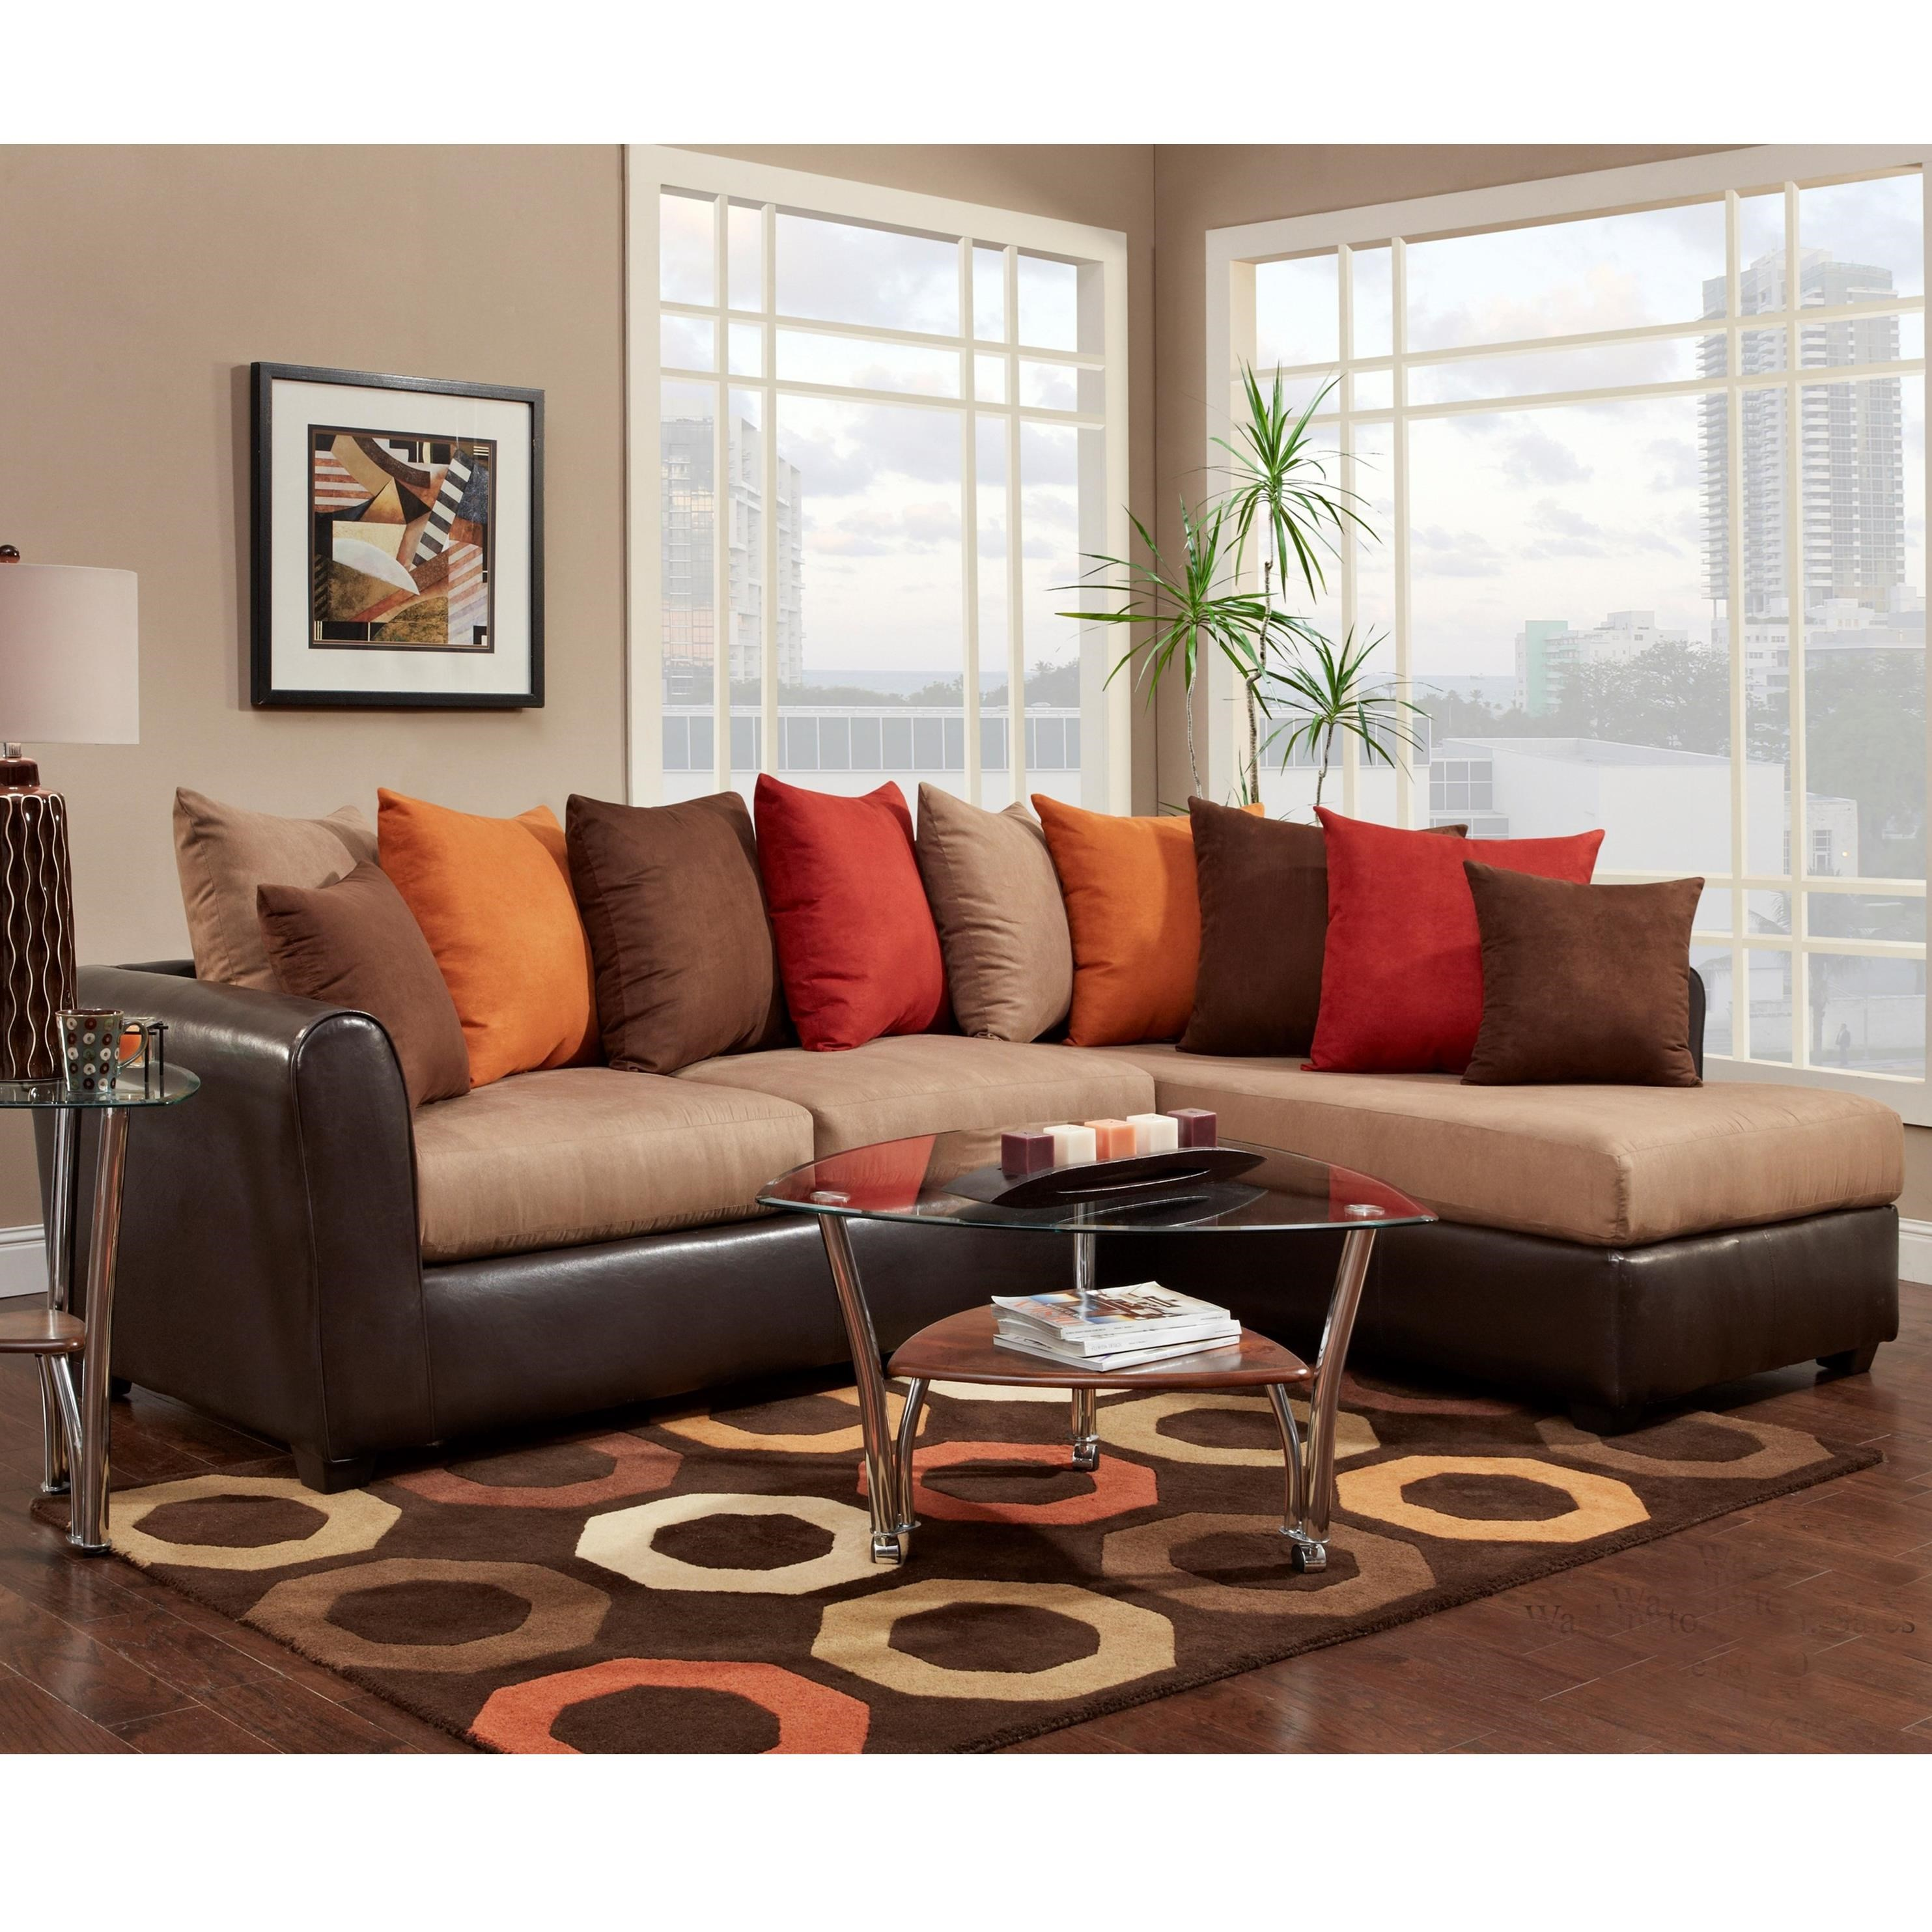 6700 Sectional with RSF Chaise by Washington Furniture at Lynn's Furniture & Mattress